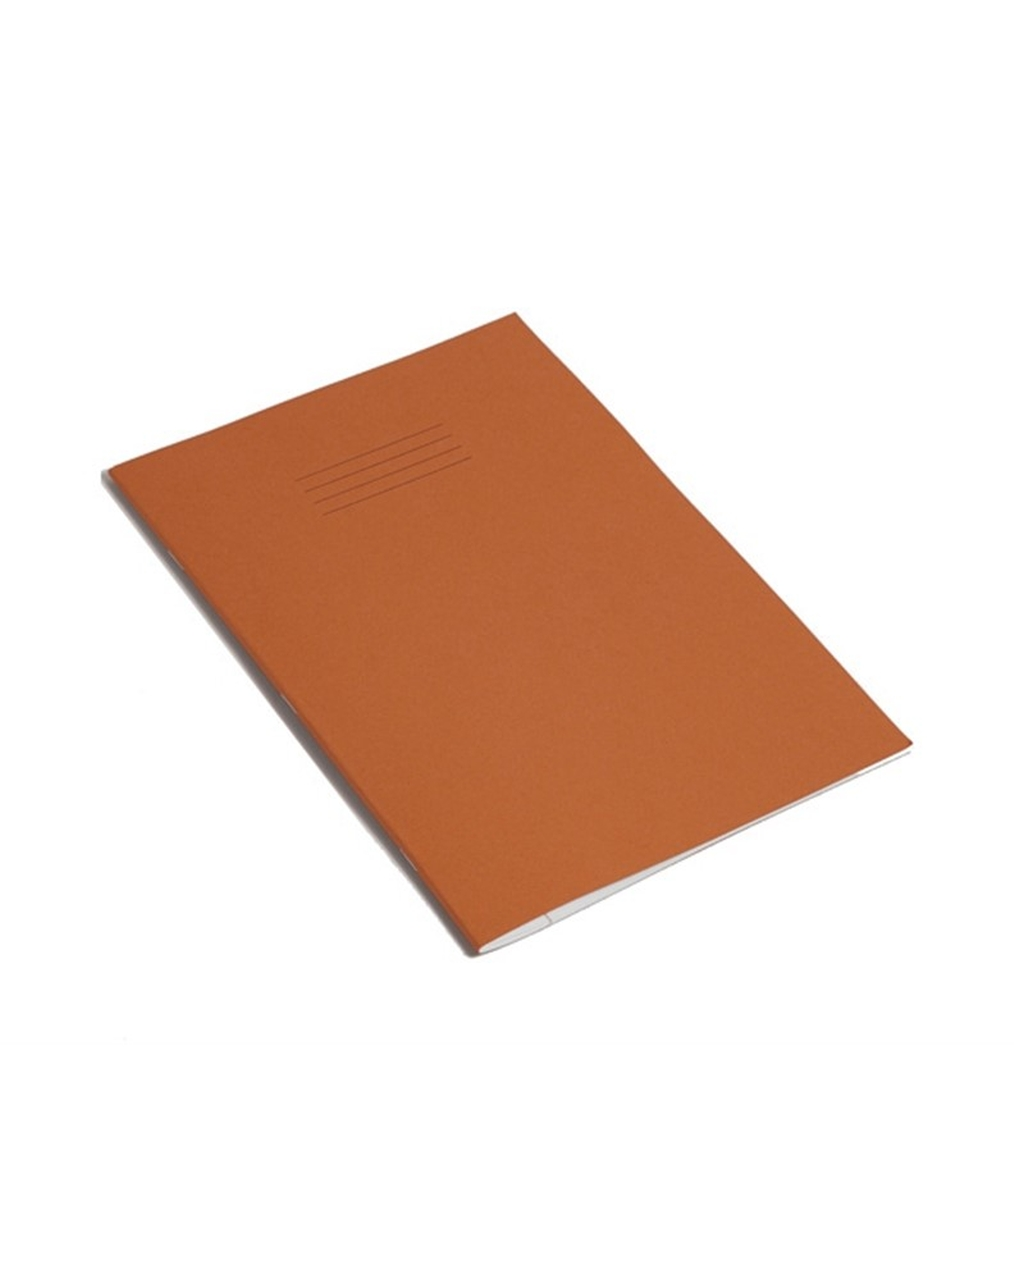 Exercise Book A4 (297 x 210mm) Orange Cover 5mm Squares 80 Pages